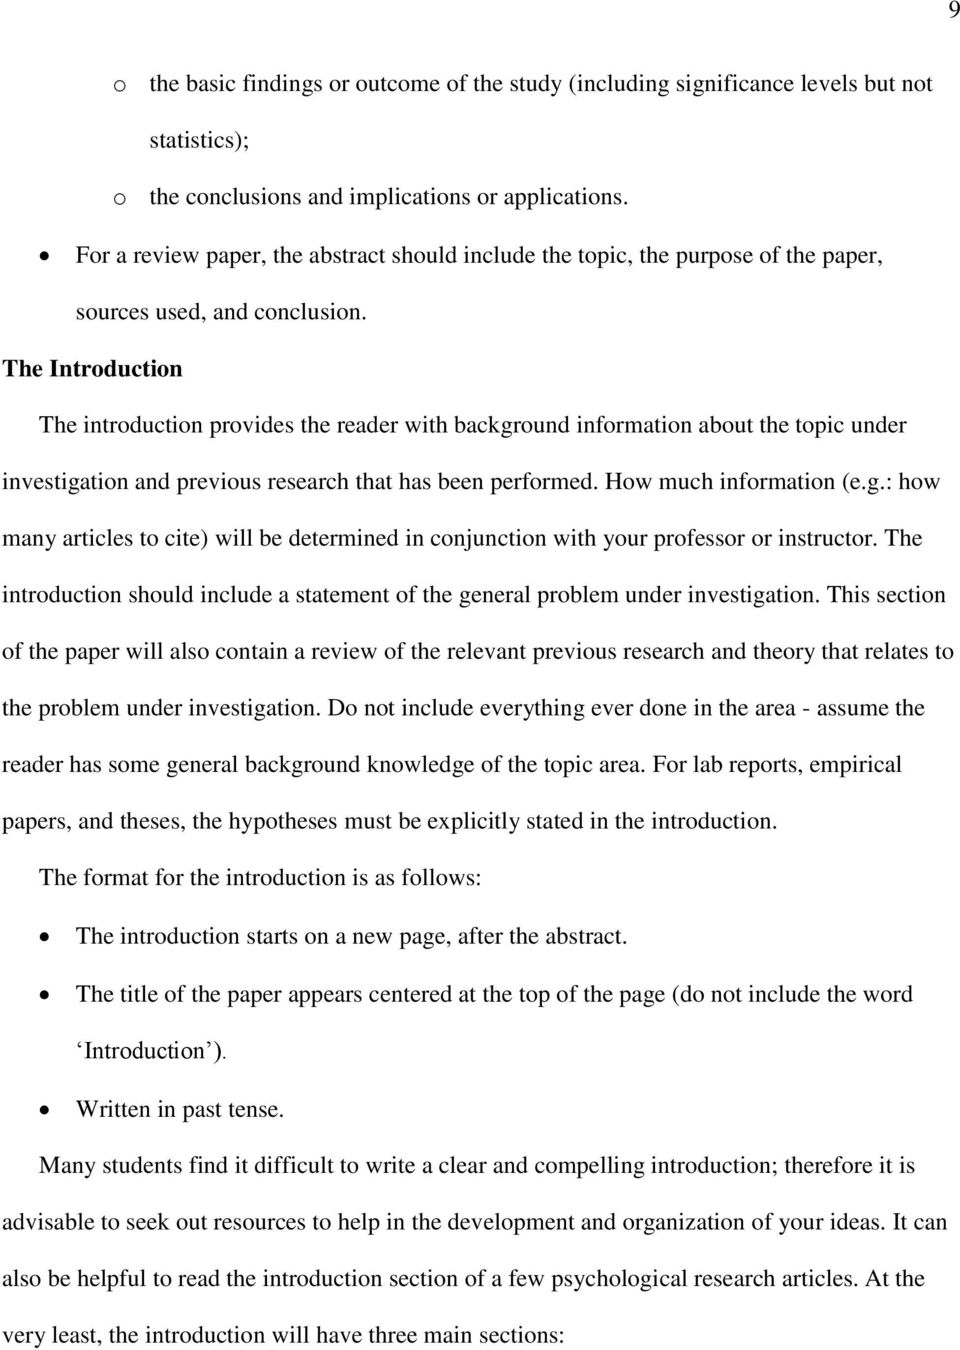 The Introduction The introduction provides the reader with background information about the topic under investigation and previous research that has been performed. How much information (e.g.: how many articles to cite) will be determined in conjunction with your professor or instructor.